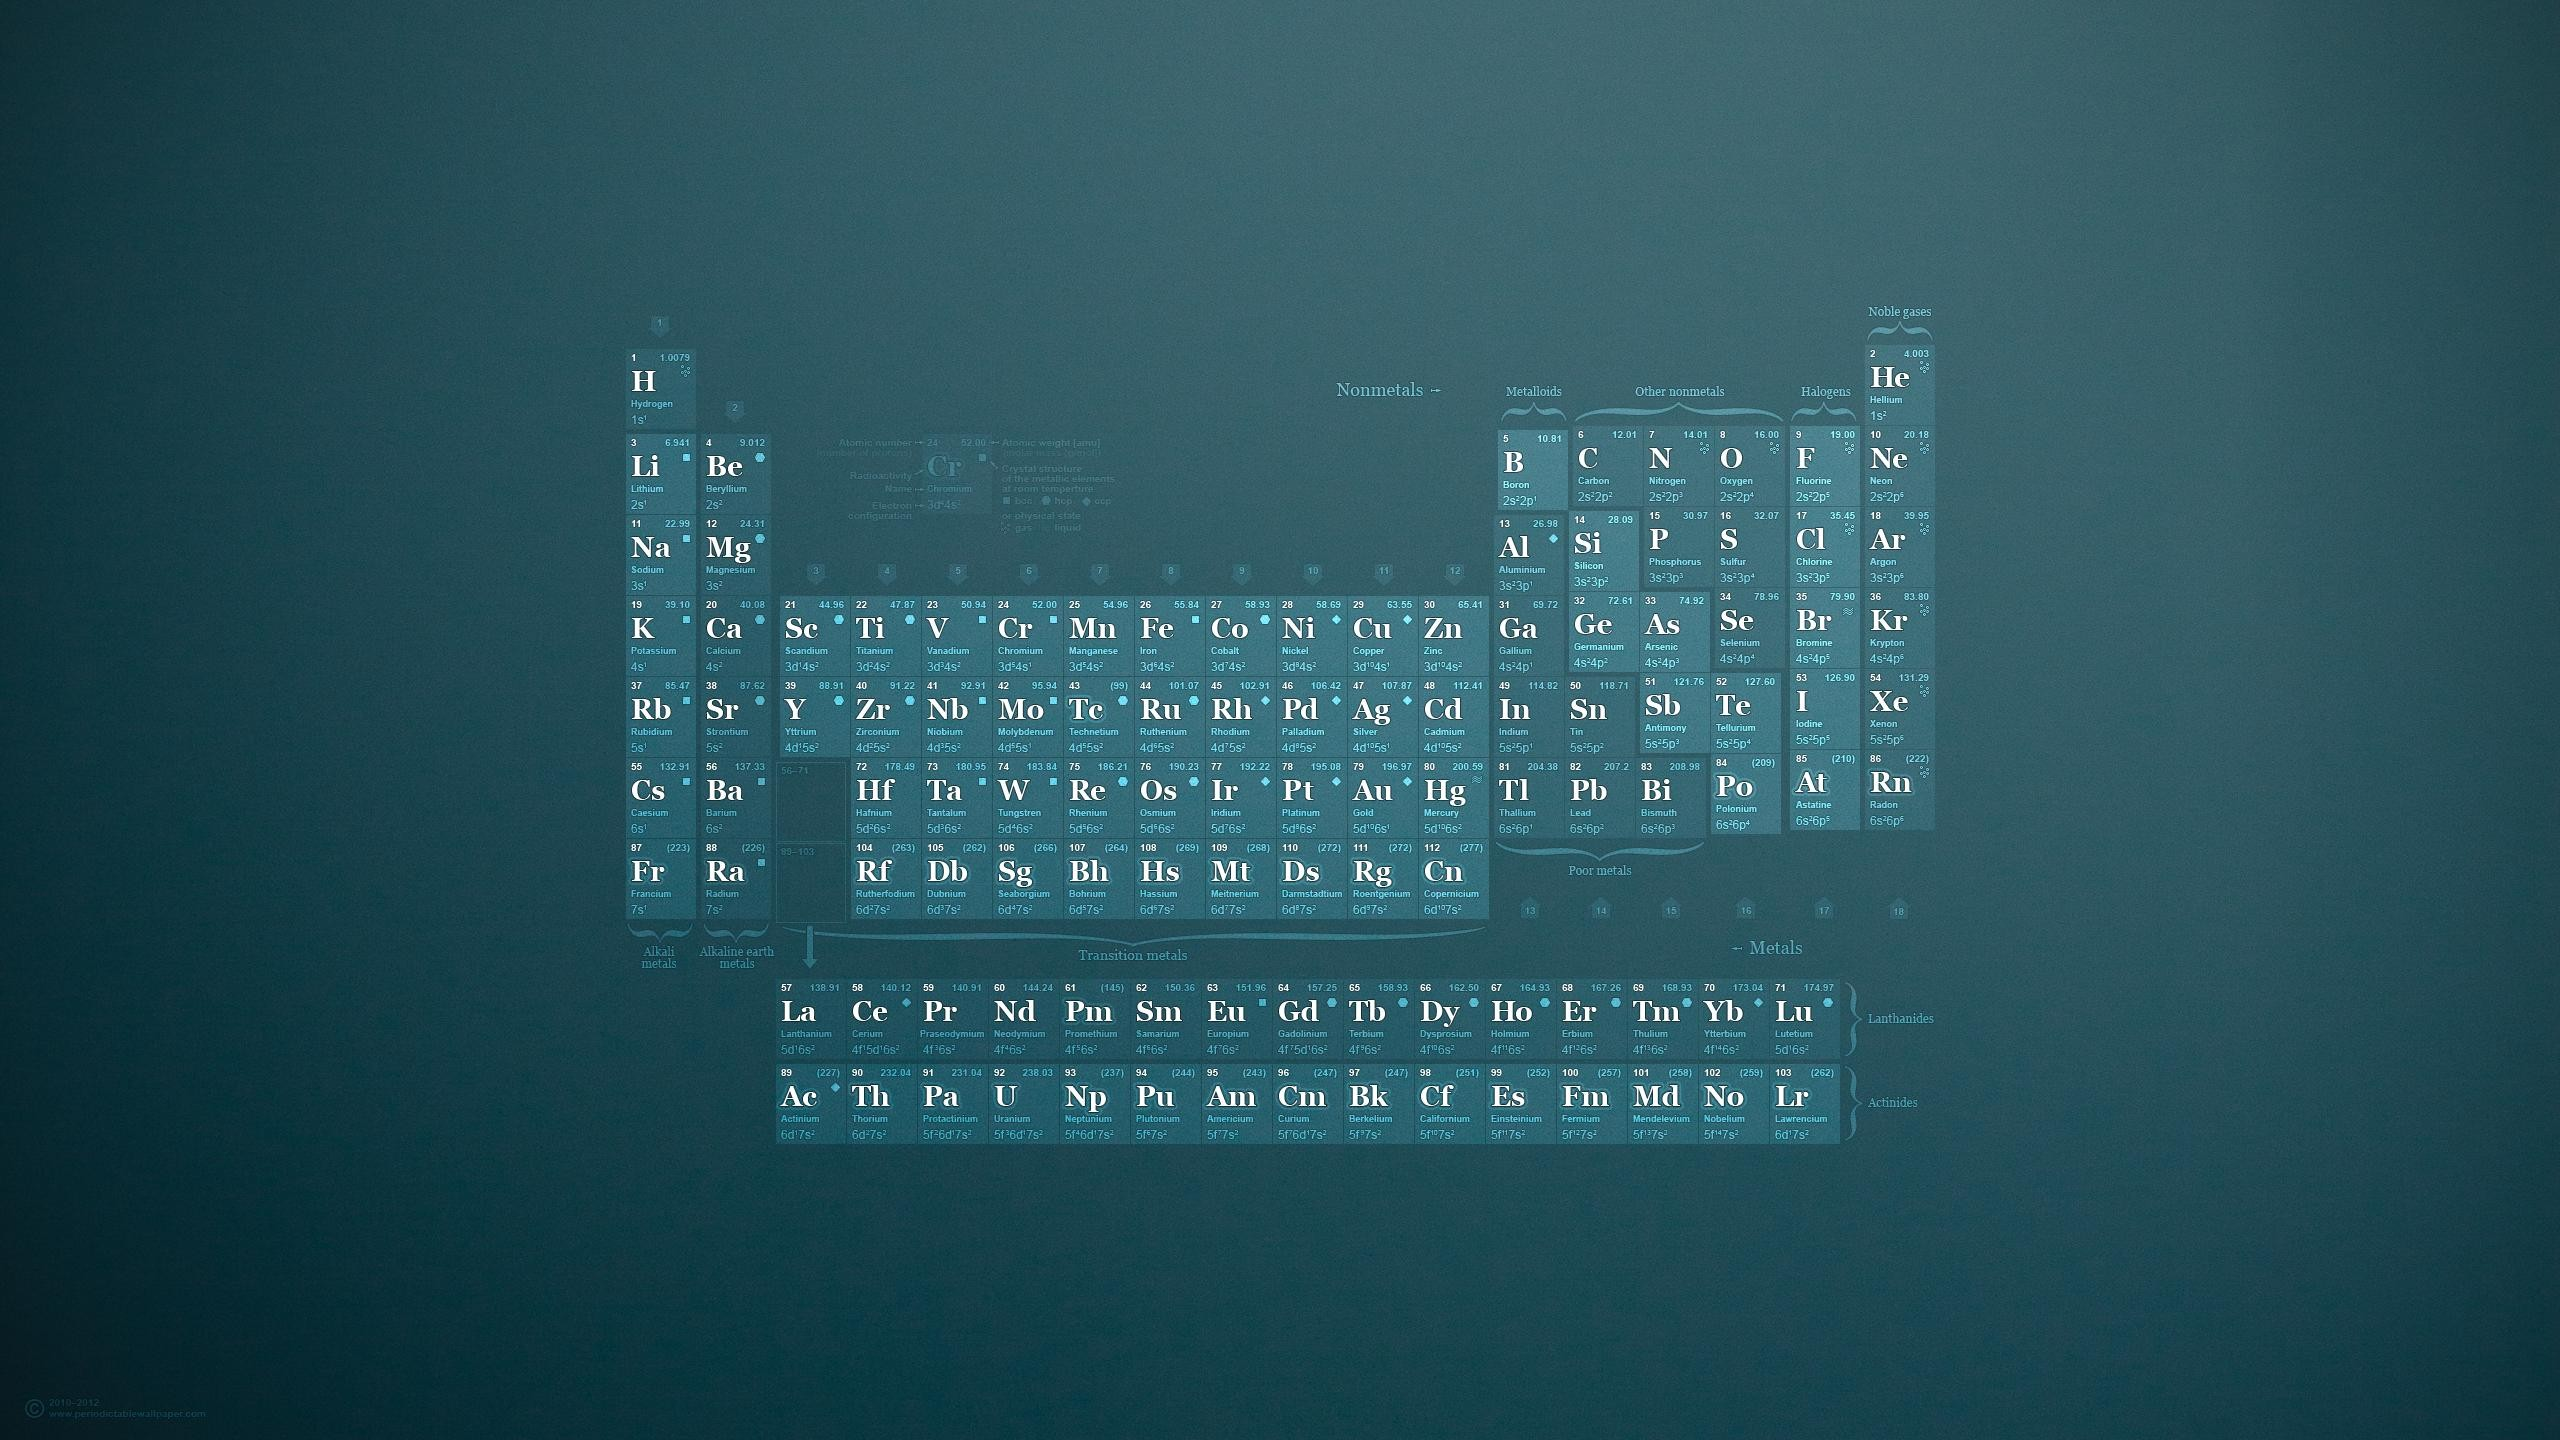 Periodic table wallpaper download free beautiful full hd wallpapers for periodic table backgrounds 2560x1600 wallpapers for periodic table backgrounds urtaz Images